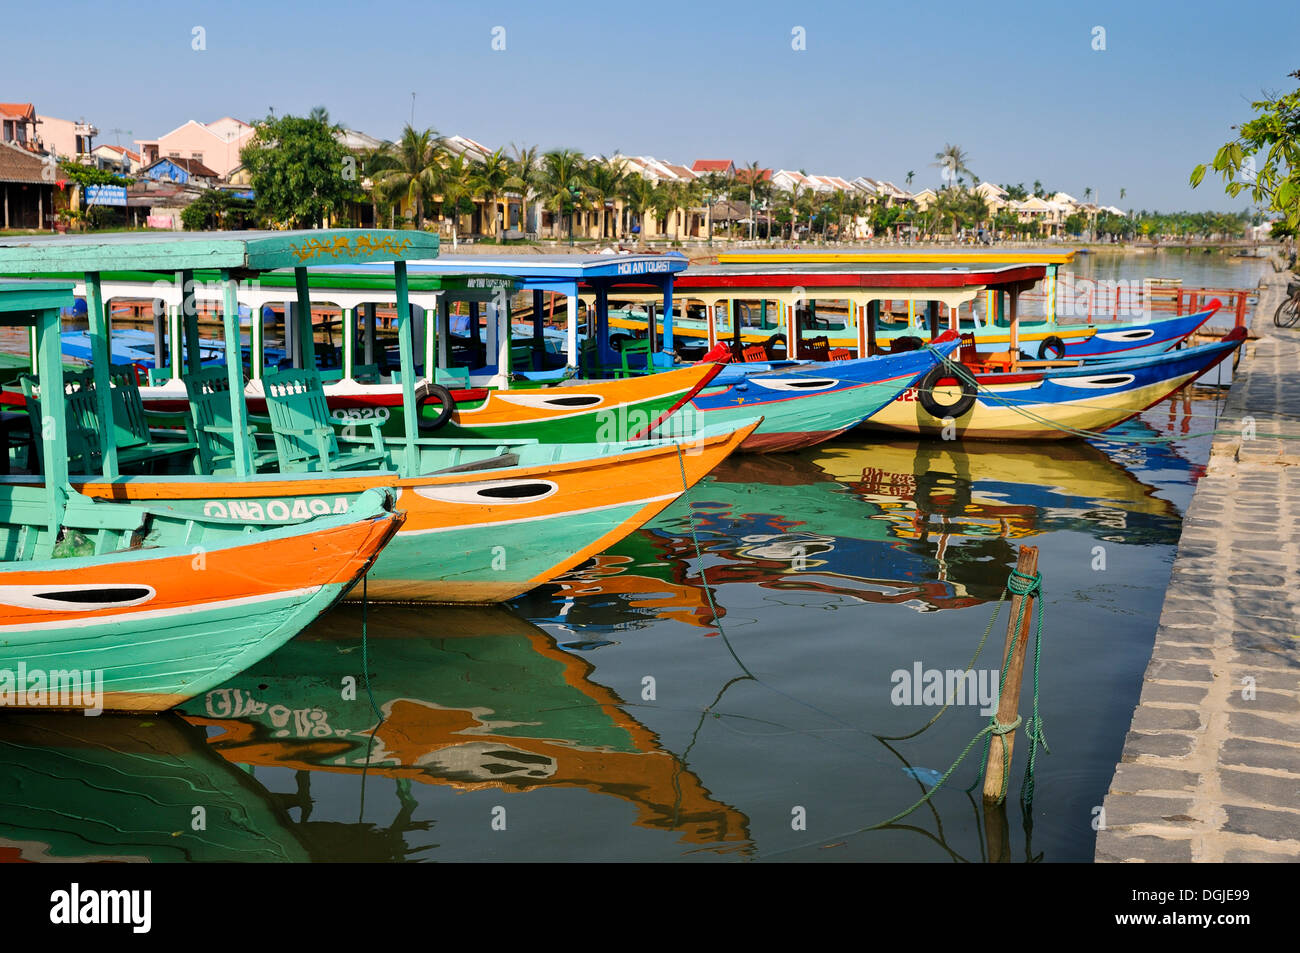 Traditional boats on the Song Thu Bon river, Hoi An, Vietnam, Southeast Asia - Stock Image